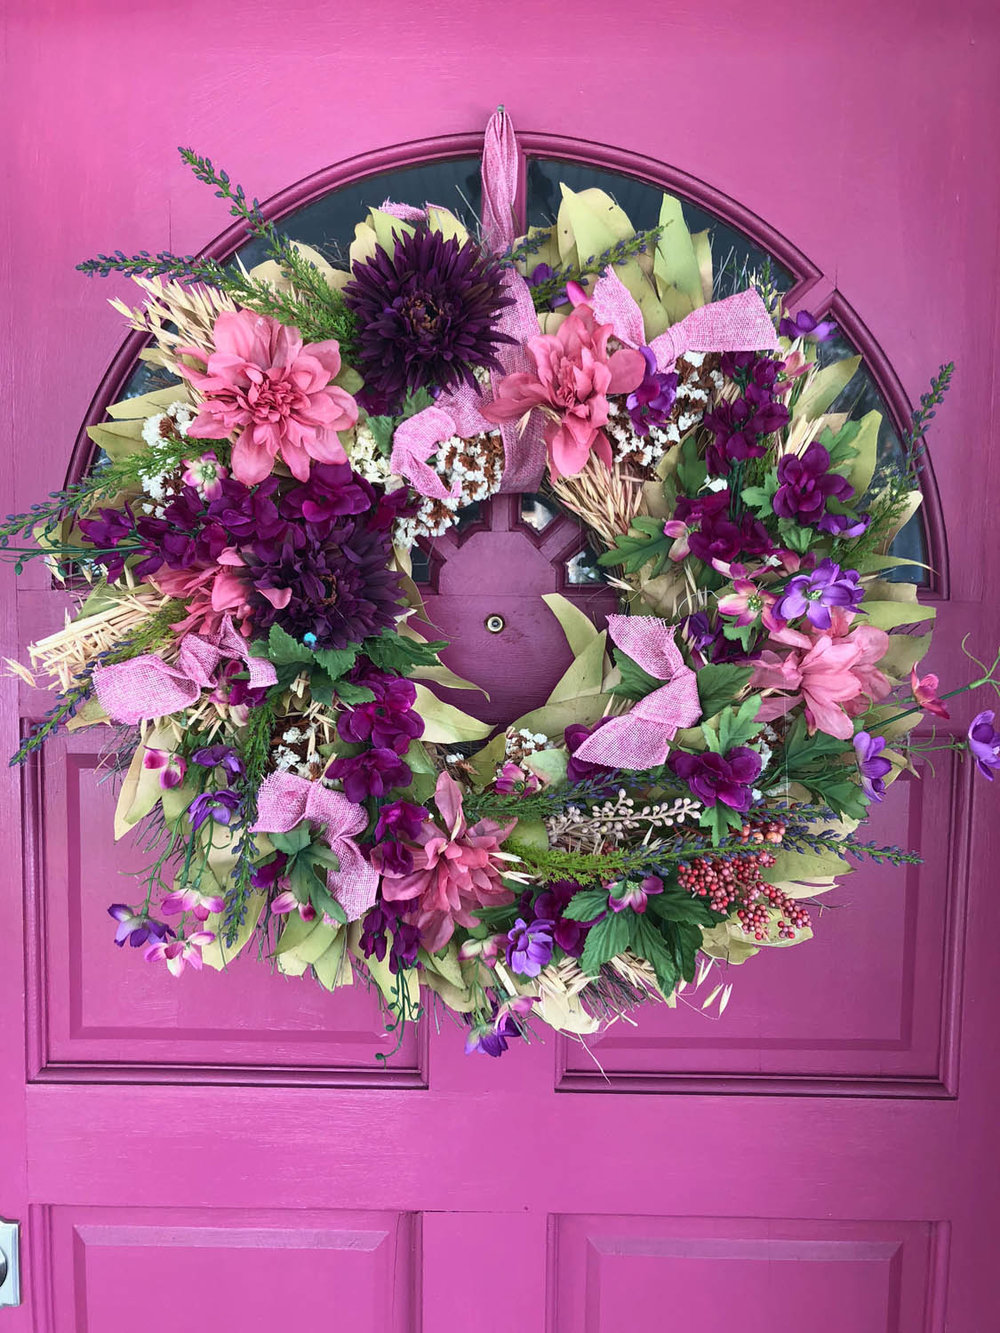 DIY spring wreath upcycle redo with fresh silk flowers hung on an exterior pink door